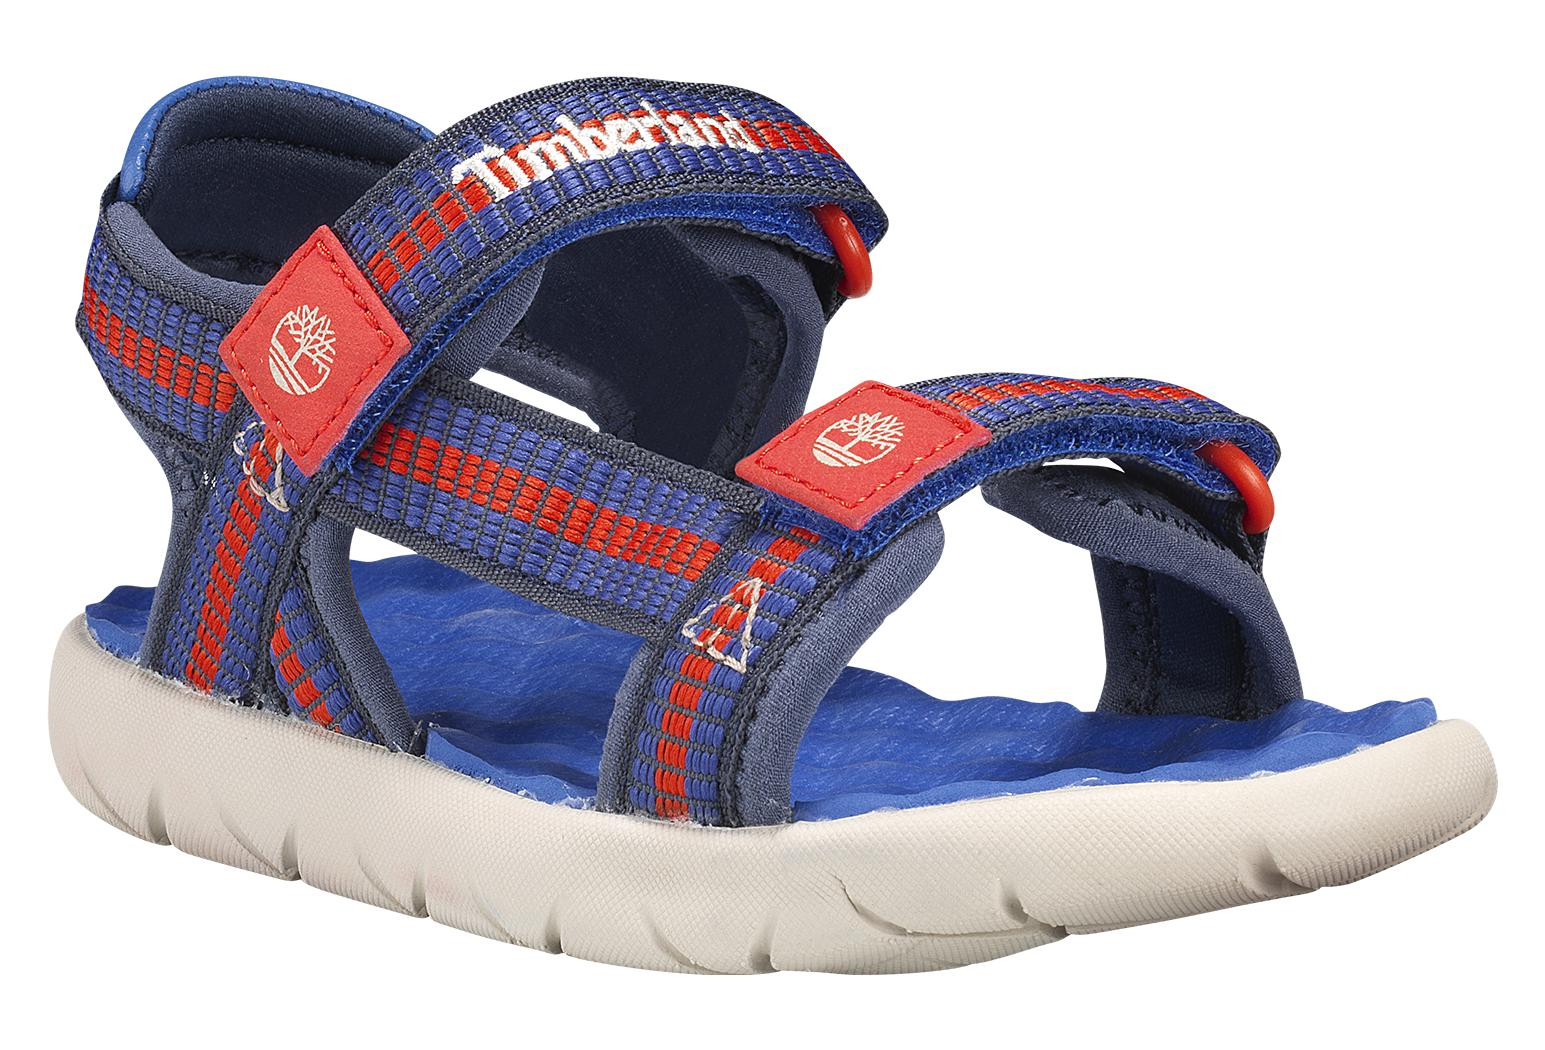 buy sale latest collection popular design Timberland Youth Sandals Perkins Row Blue / Red